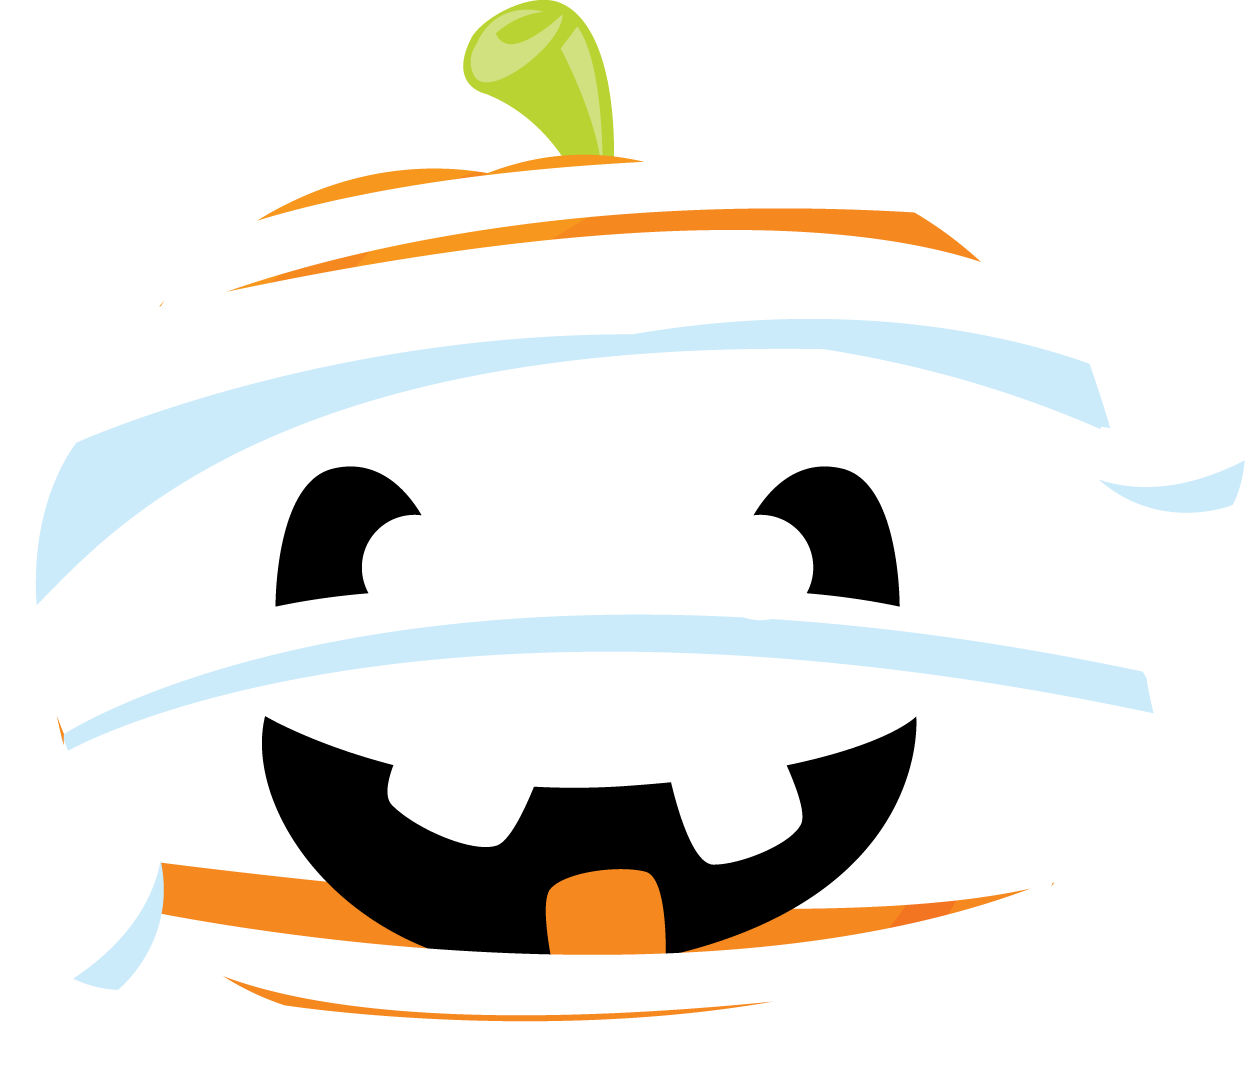 Happy Halloween Clipart. | Oh My Fiesta! in english